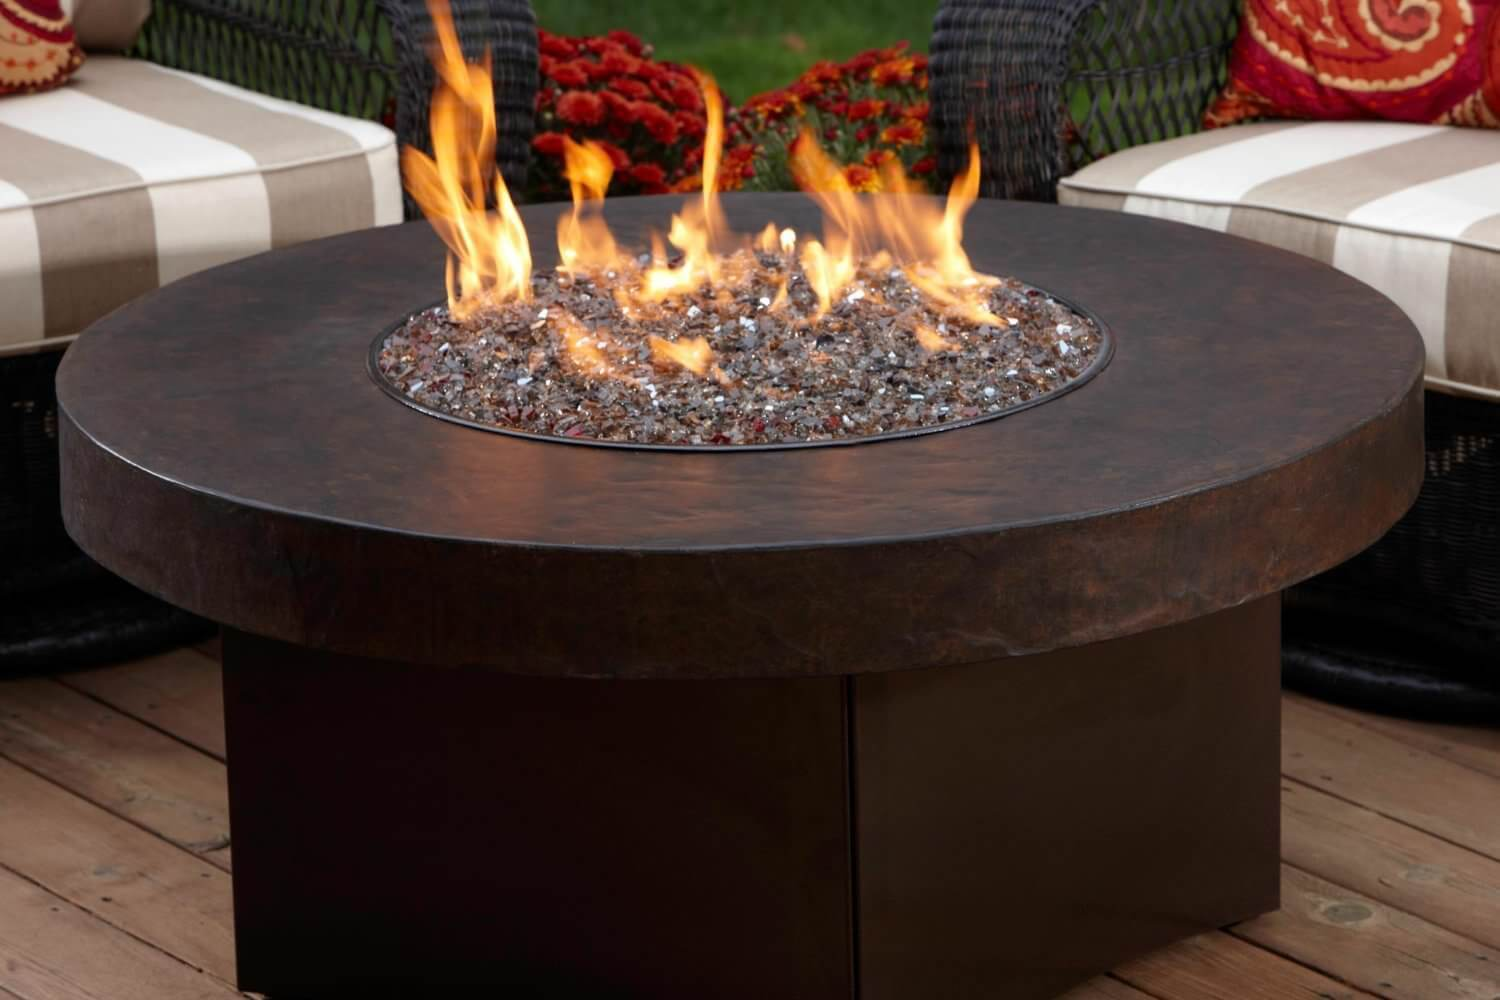 Large Round Brown Metal Gas Powered Movable Fire Pit With A Square Base And  Round Top